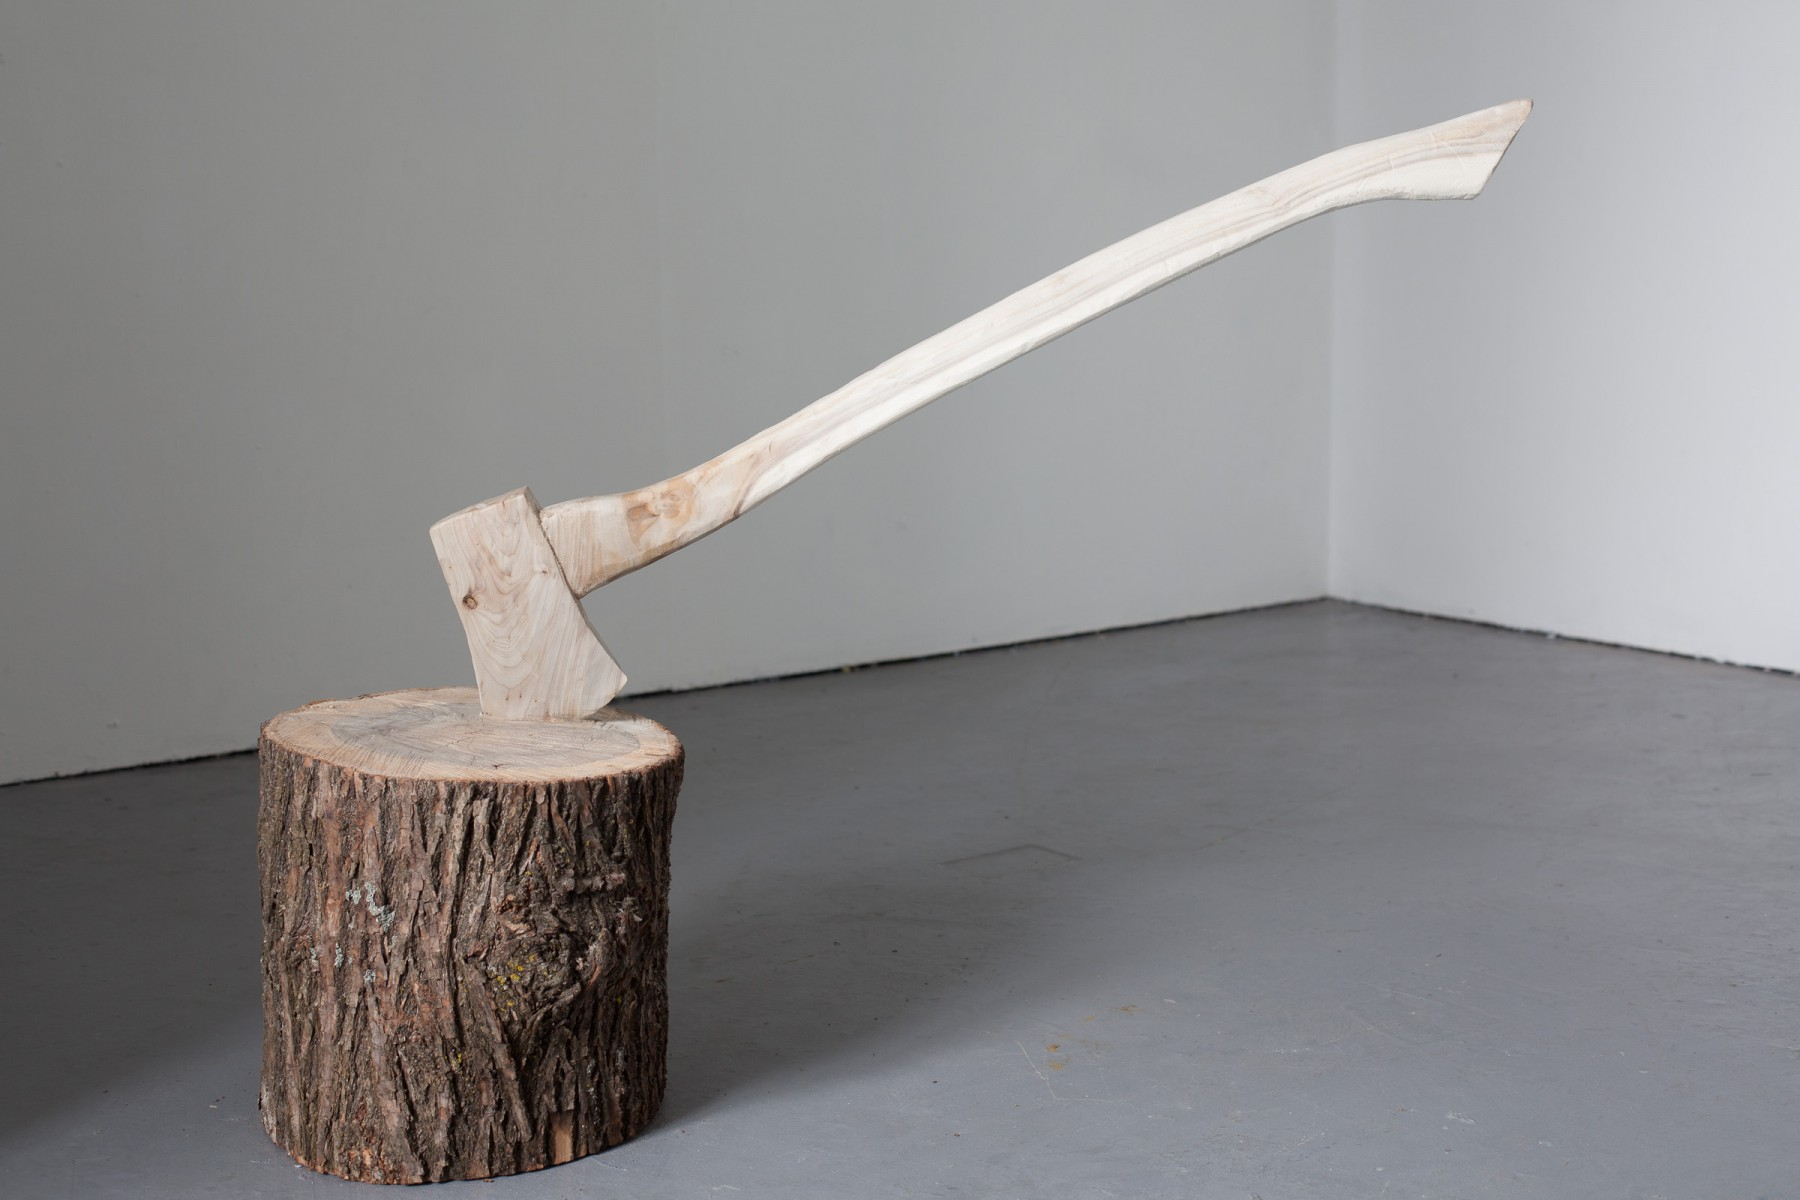 2009 work by Nicole Breedon Weeping willow (one piece) Approx. 120x40x100cm Chopping Block Paradox is a rough-cut tree trunk penetrated by a to-scale traditional, wooden handled axe, the entire piece hewn from a single piece of weeping willow. Instead of spitting it in two, the log becomes the axe's captor. Once unified, this natural pair of objects becomes stripped of purpose